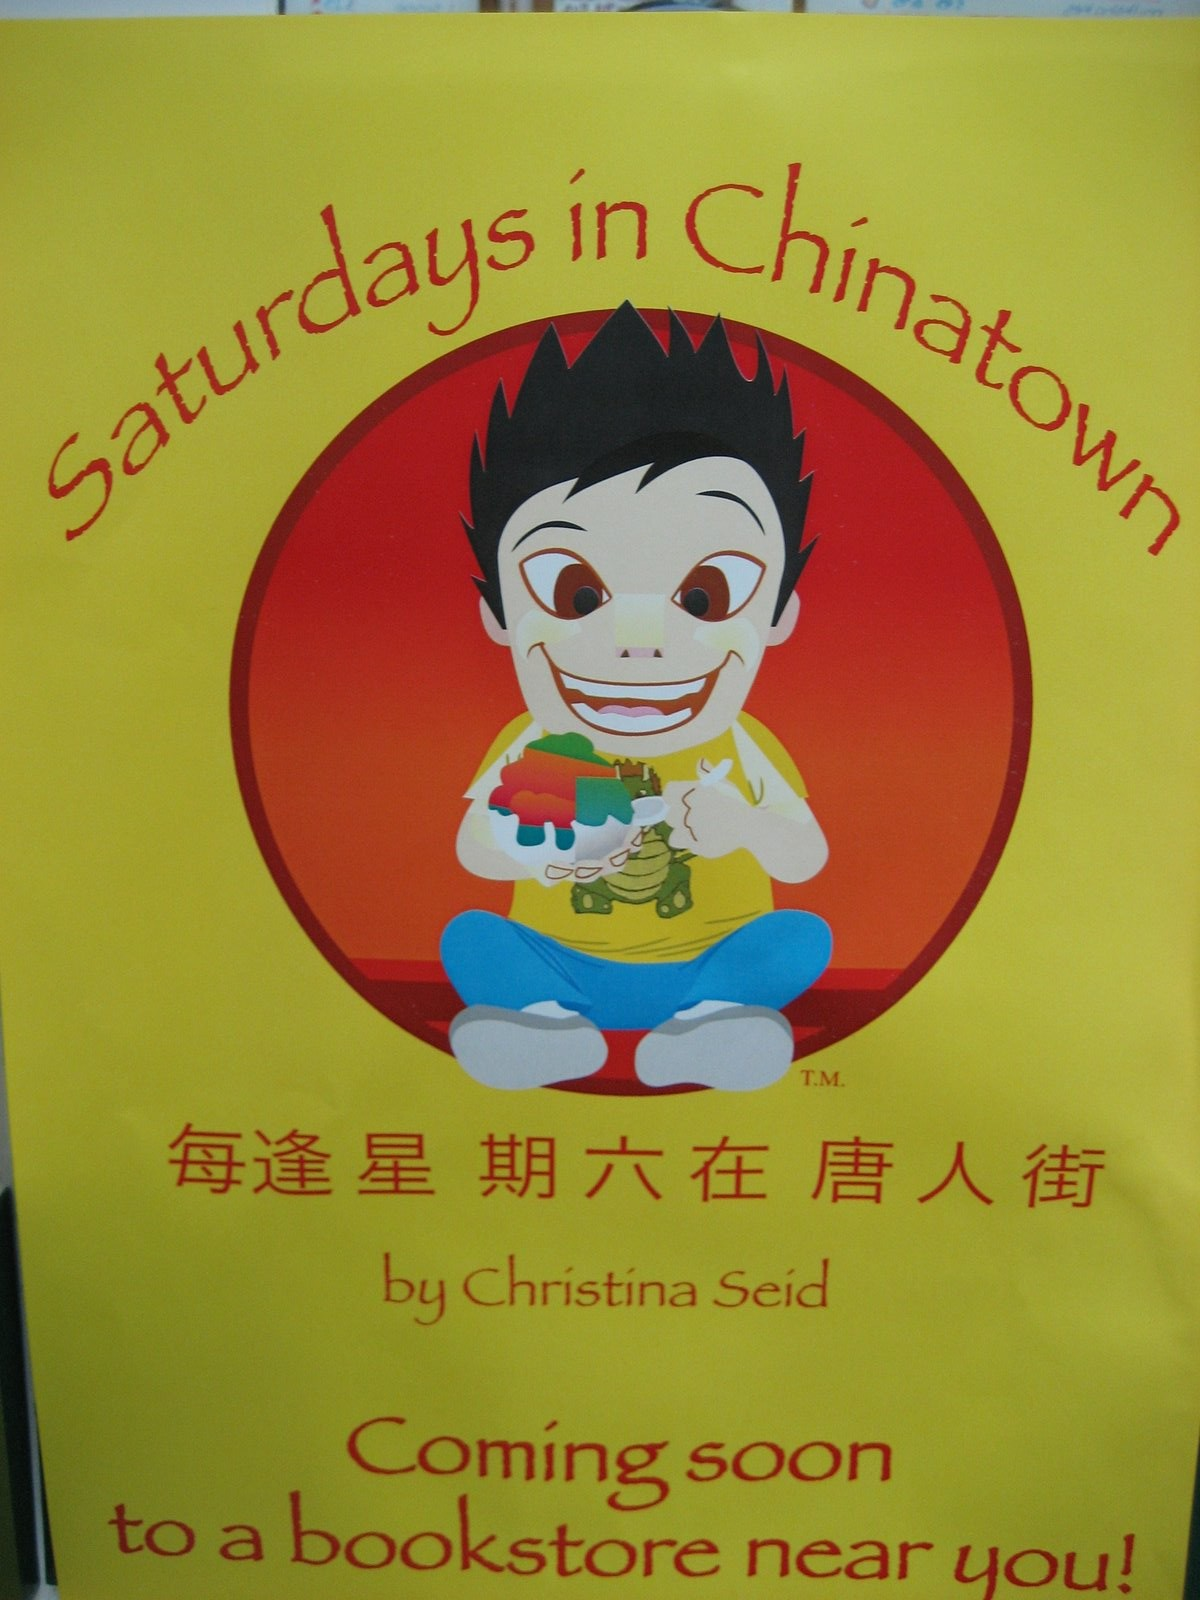 Saturdays In Chinatown Coming Soon